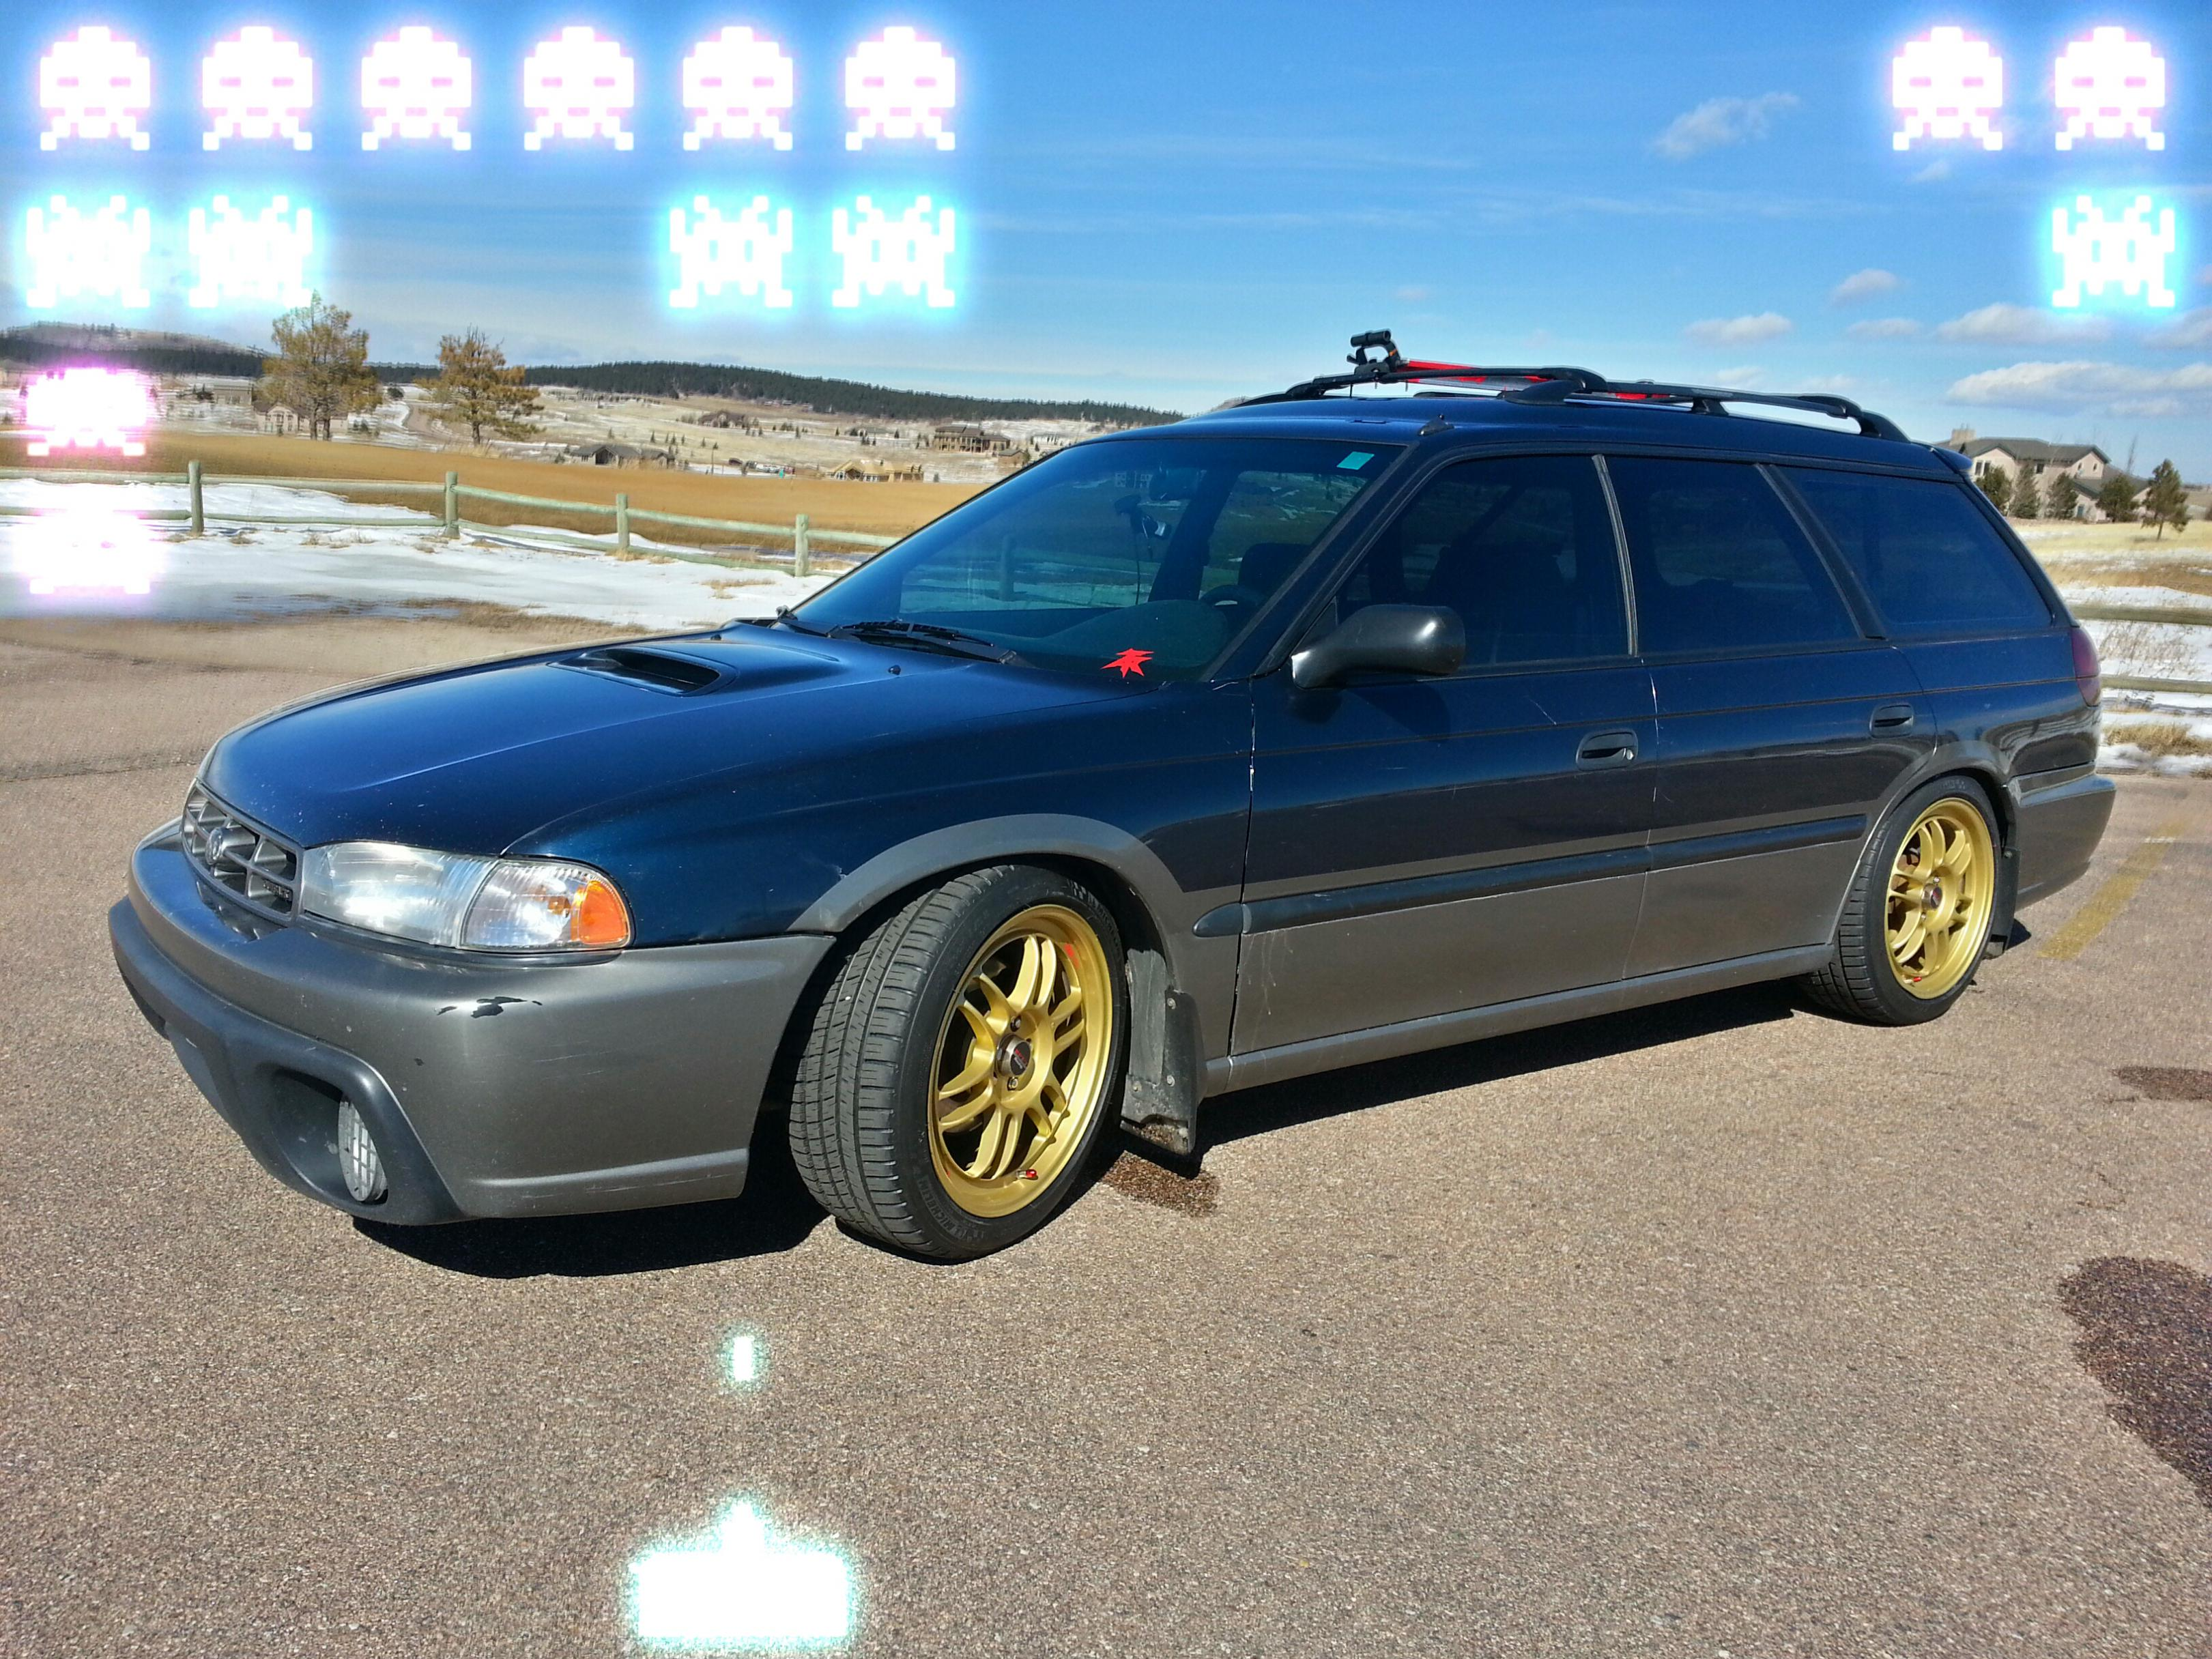 my 1998 outback, lowered on coilovers. - subaru outback - subaru